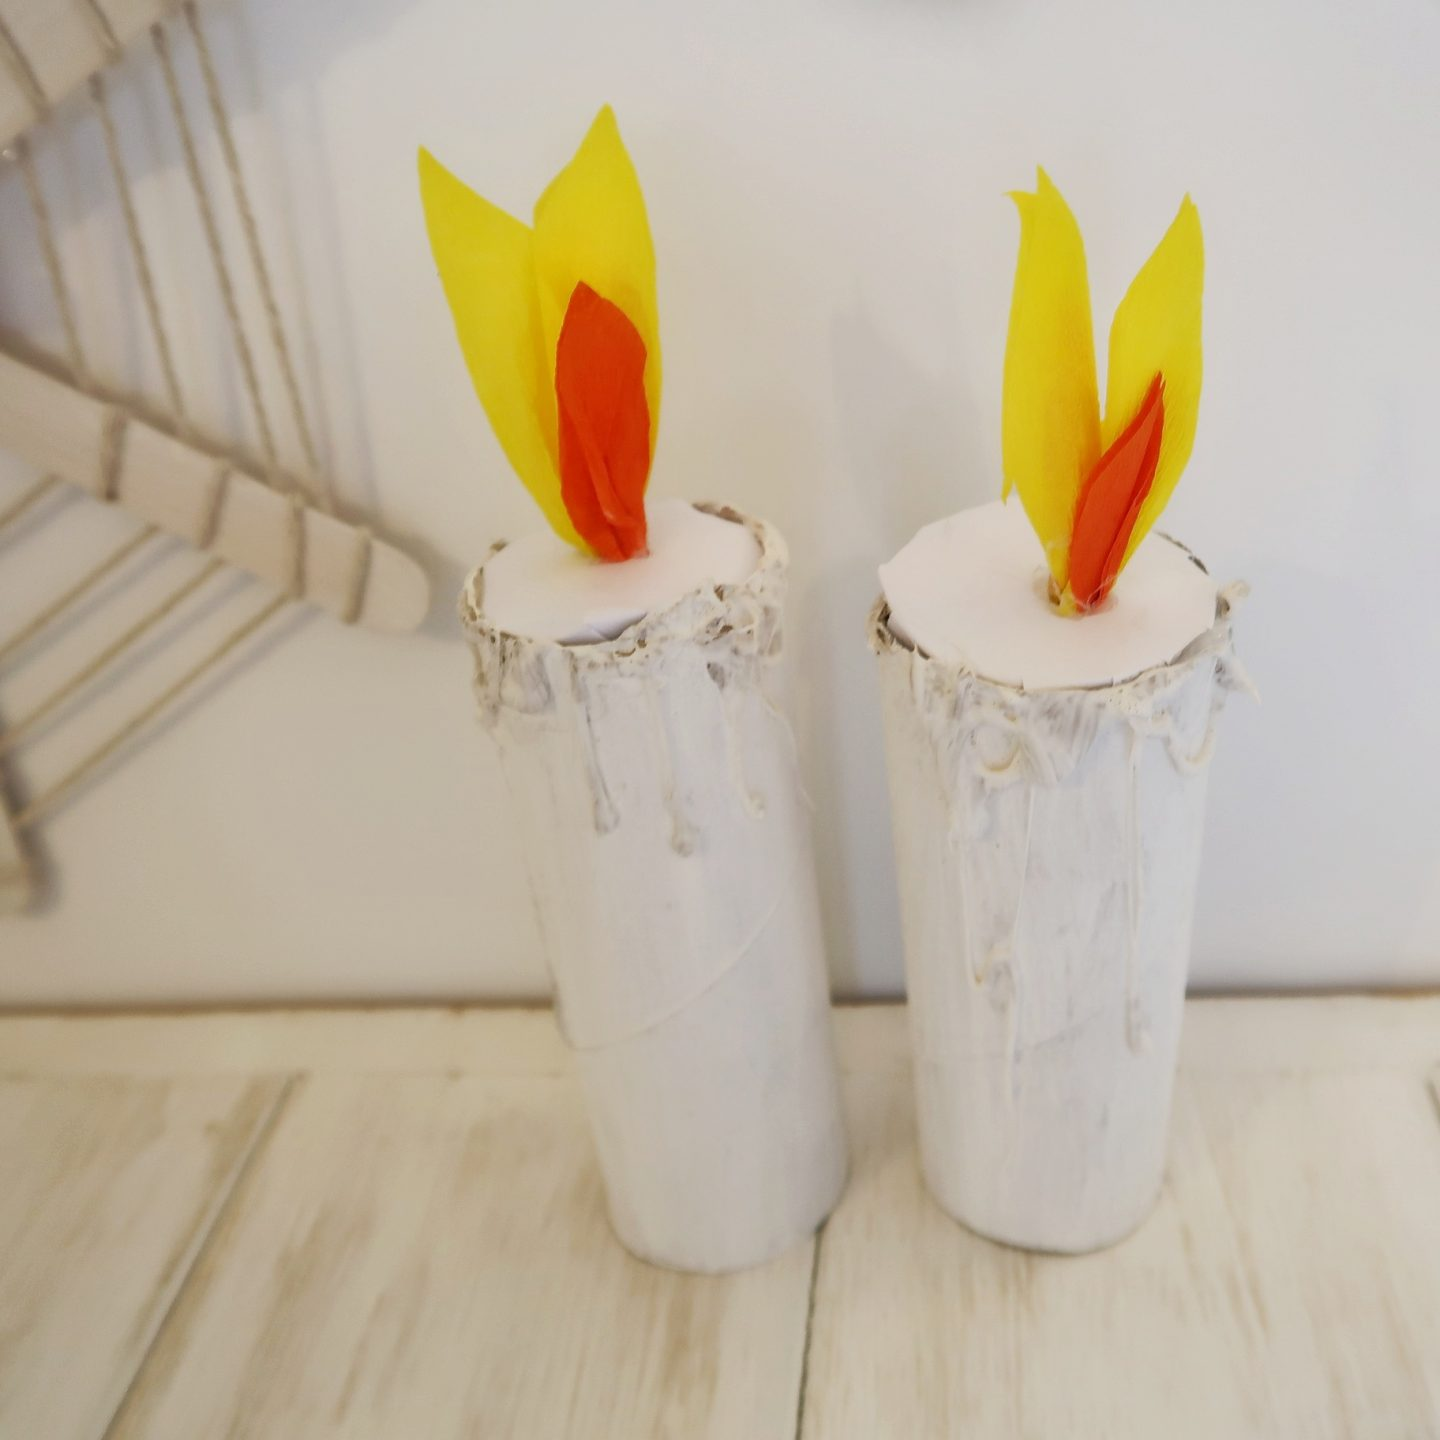 Three Easy Halloween Decorations to make with Kids - candles